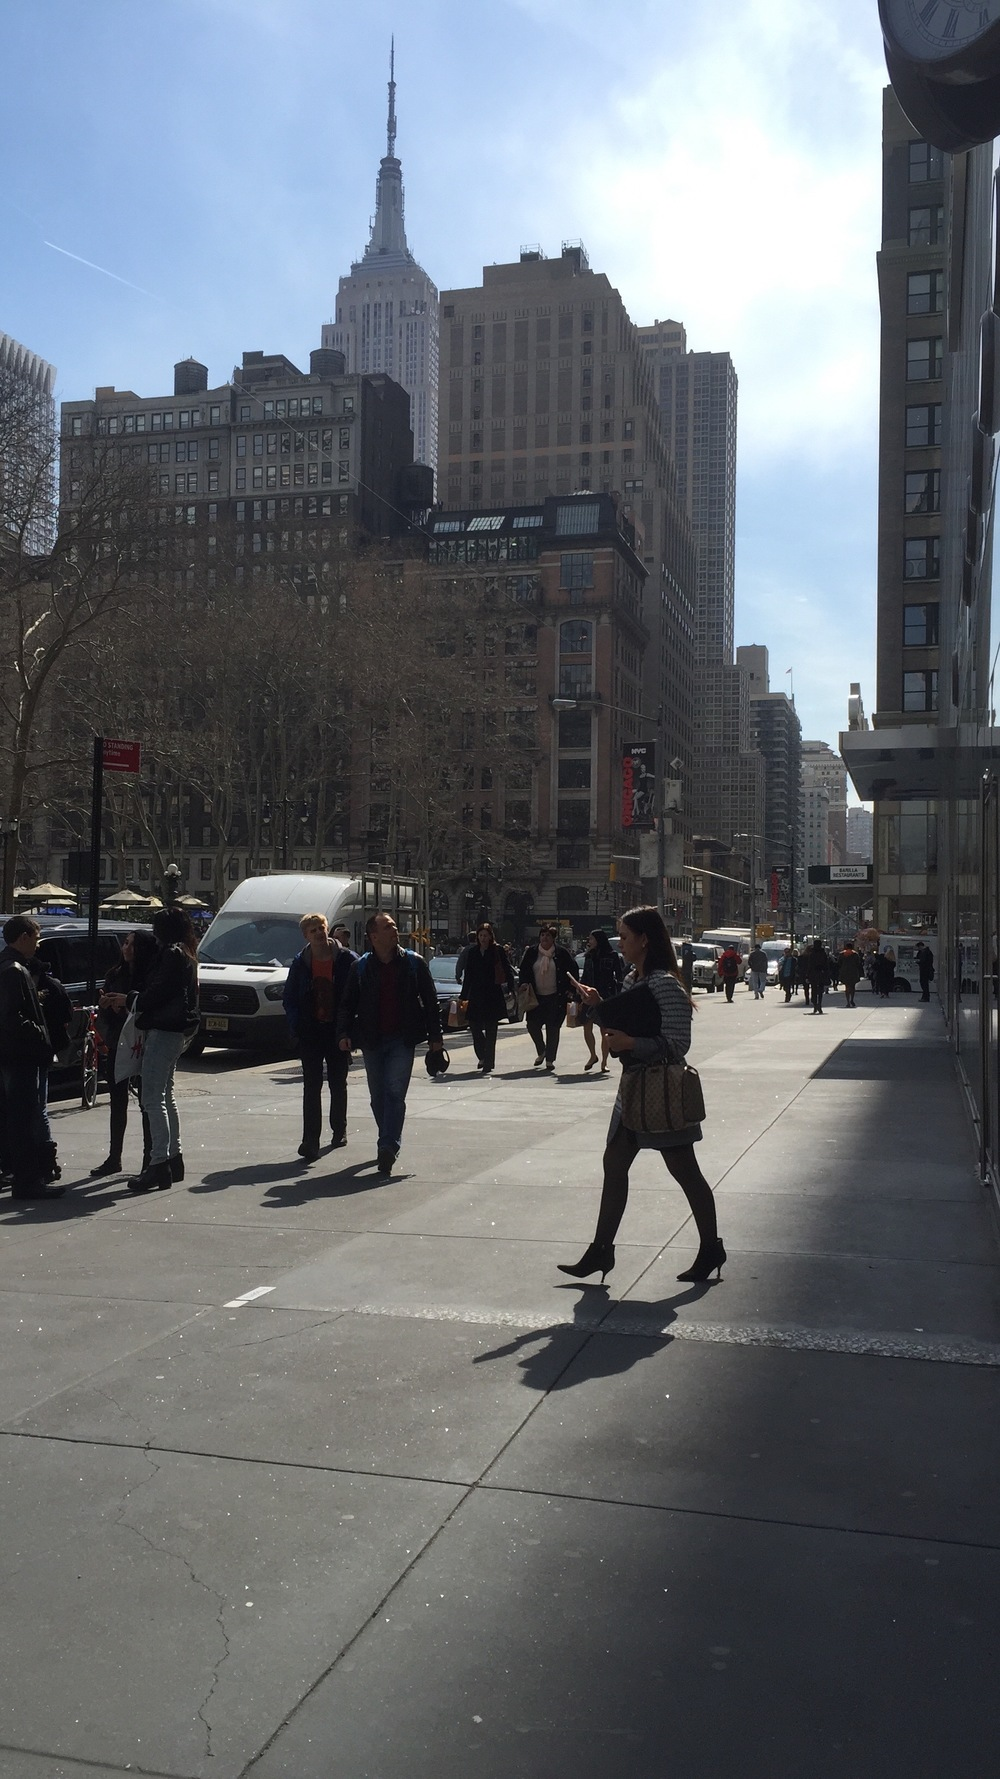 Looking south, towards the Empire State Building across from Bryant Park on 42nd Street and 5th avenue on a sunny Spring afternoon - March 23, 2016